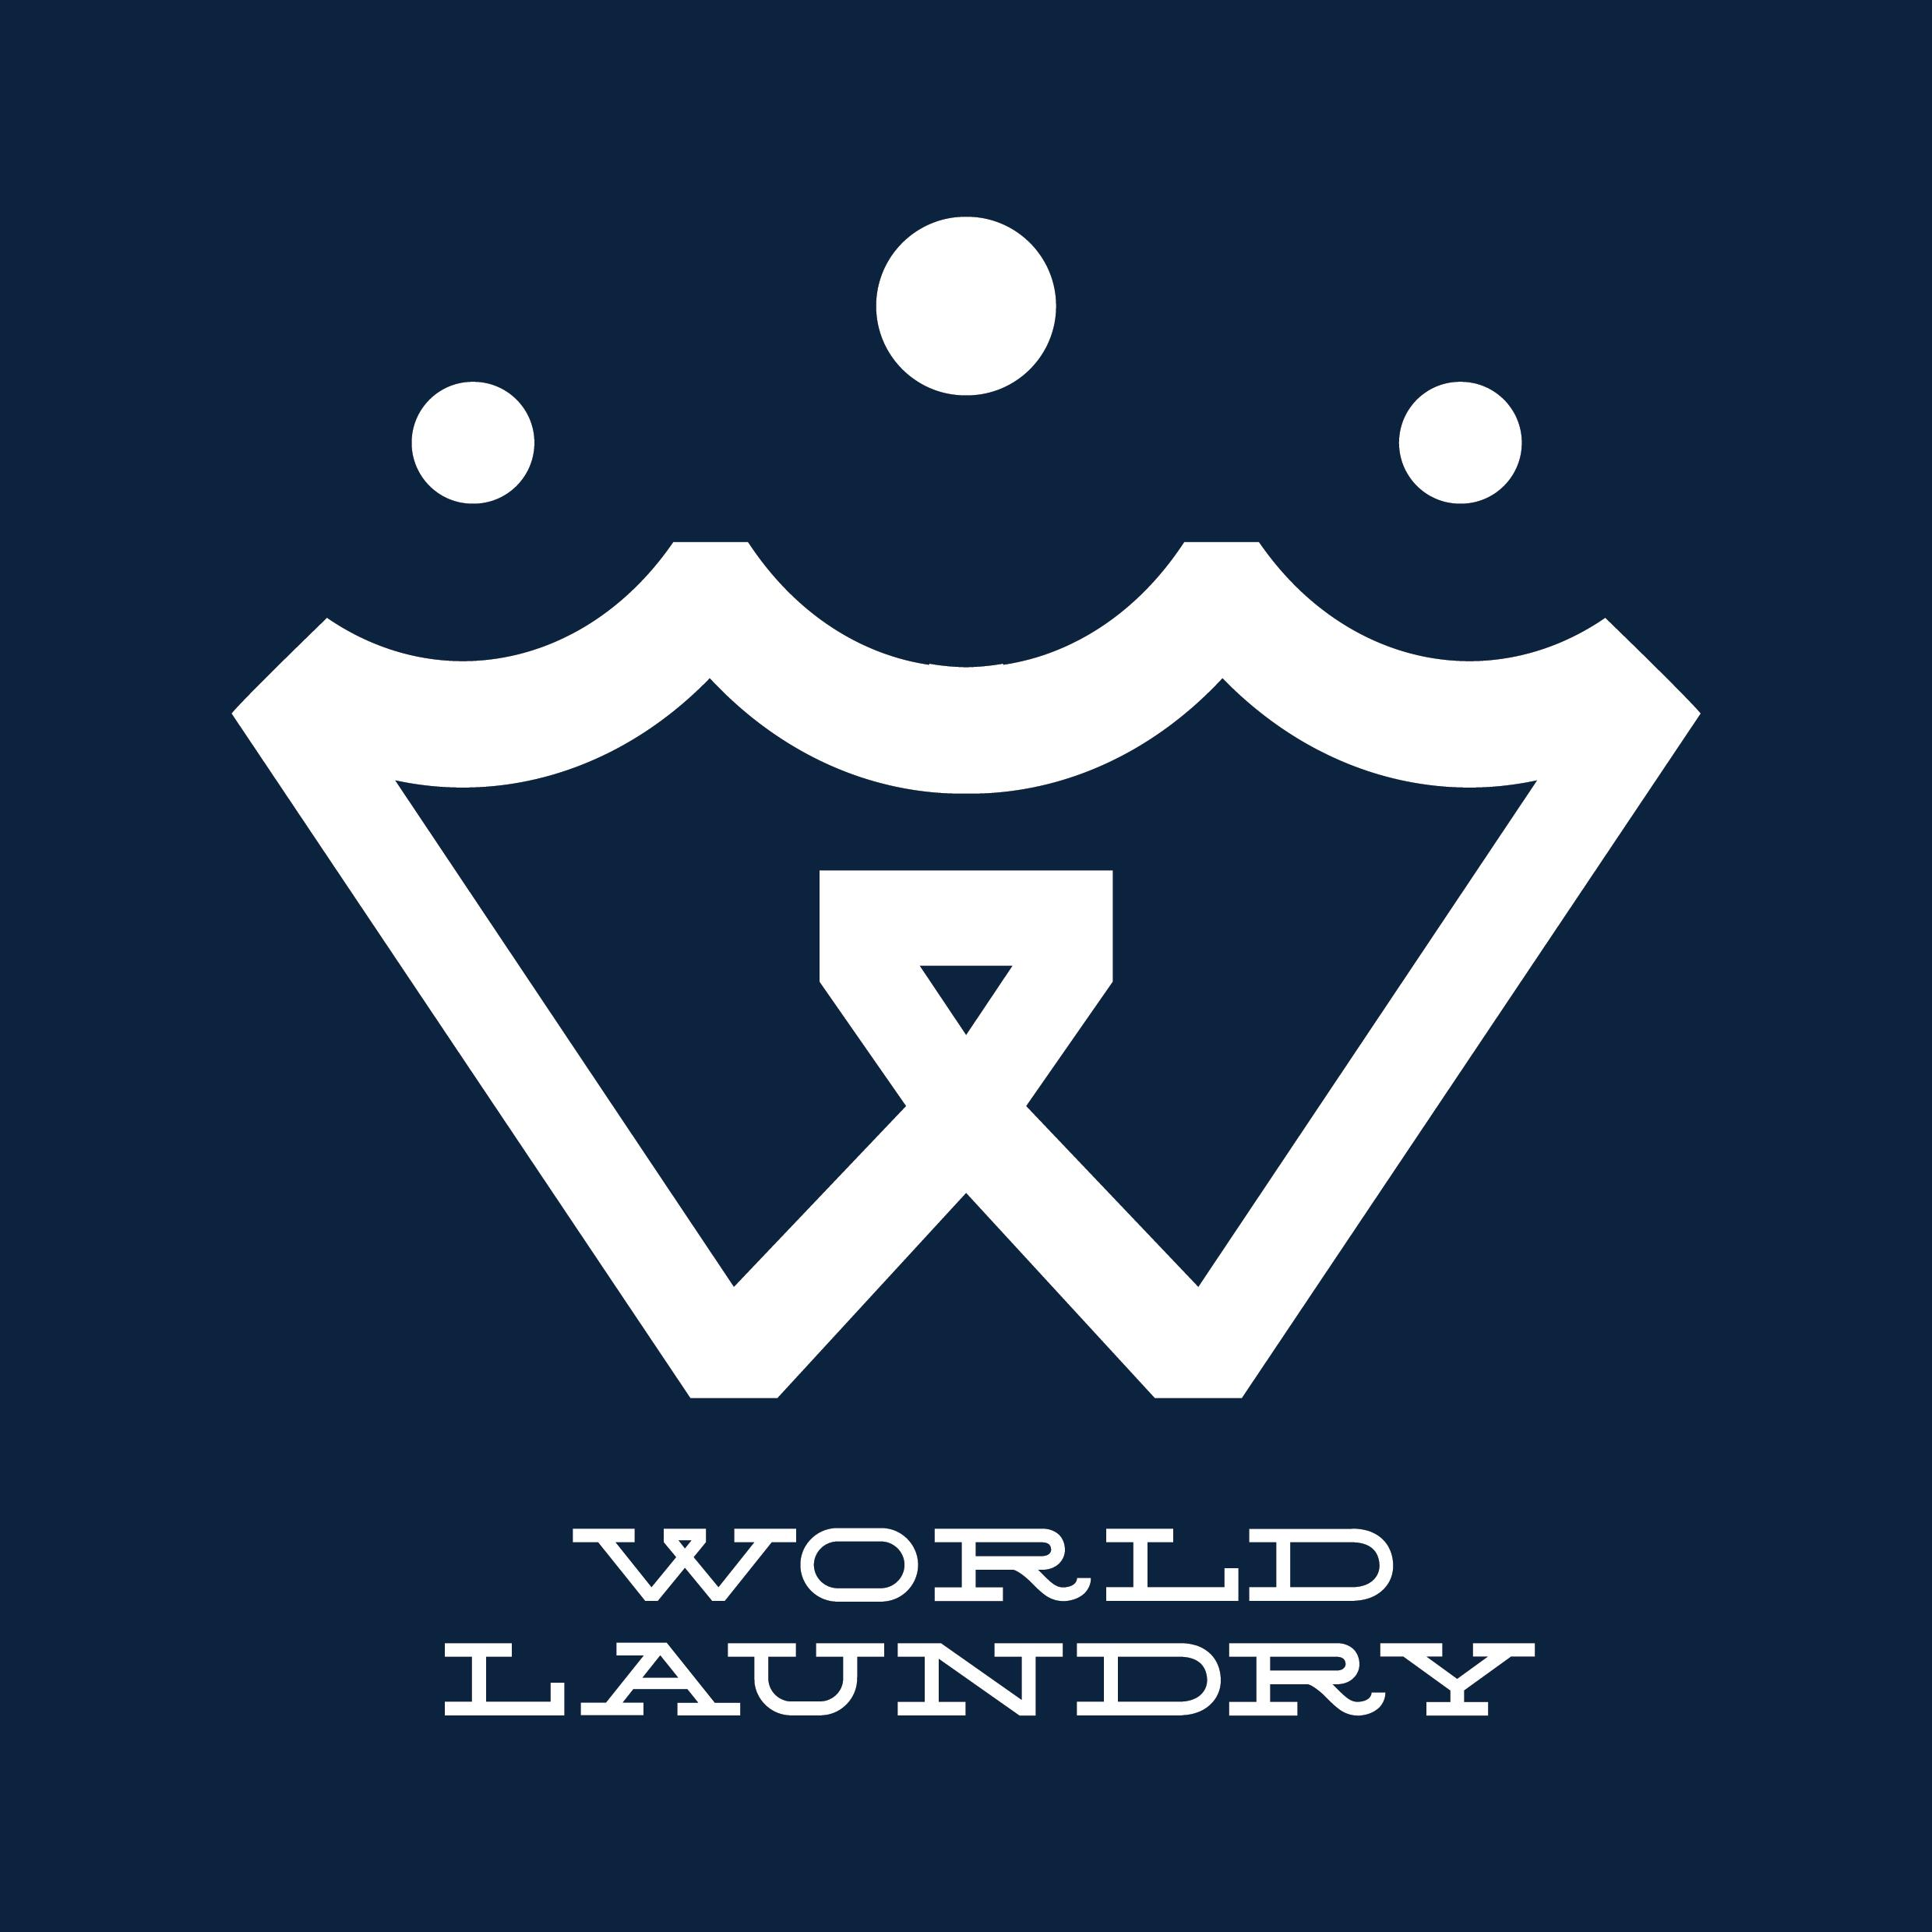 World Laundry